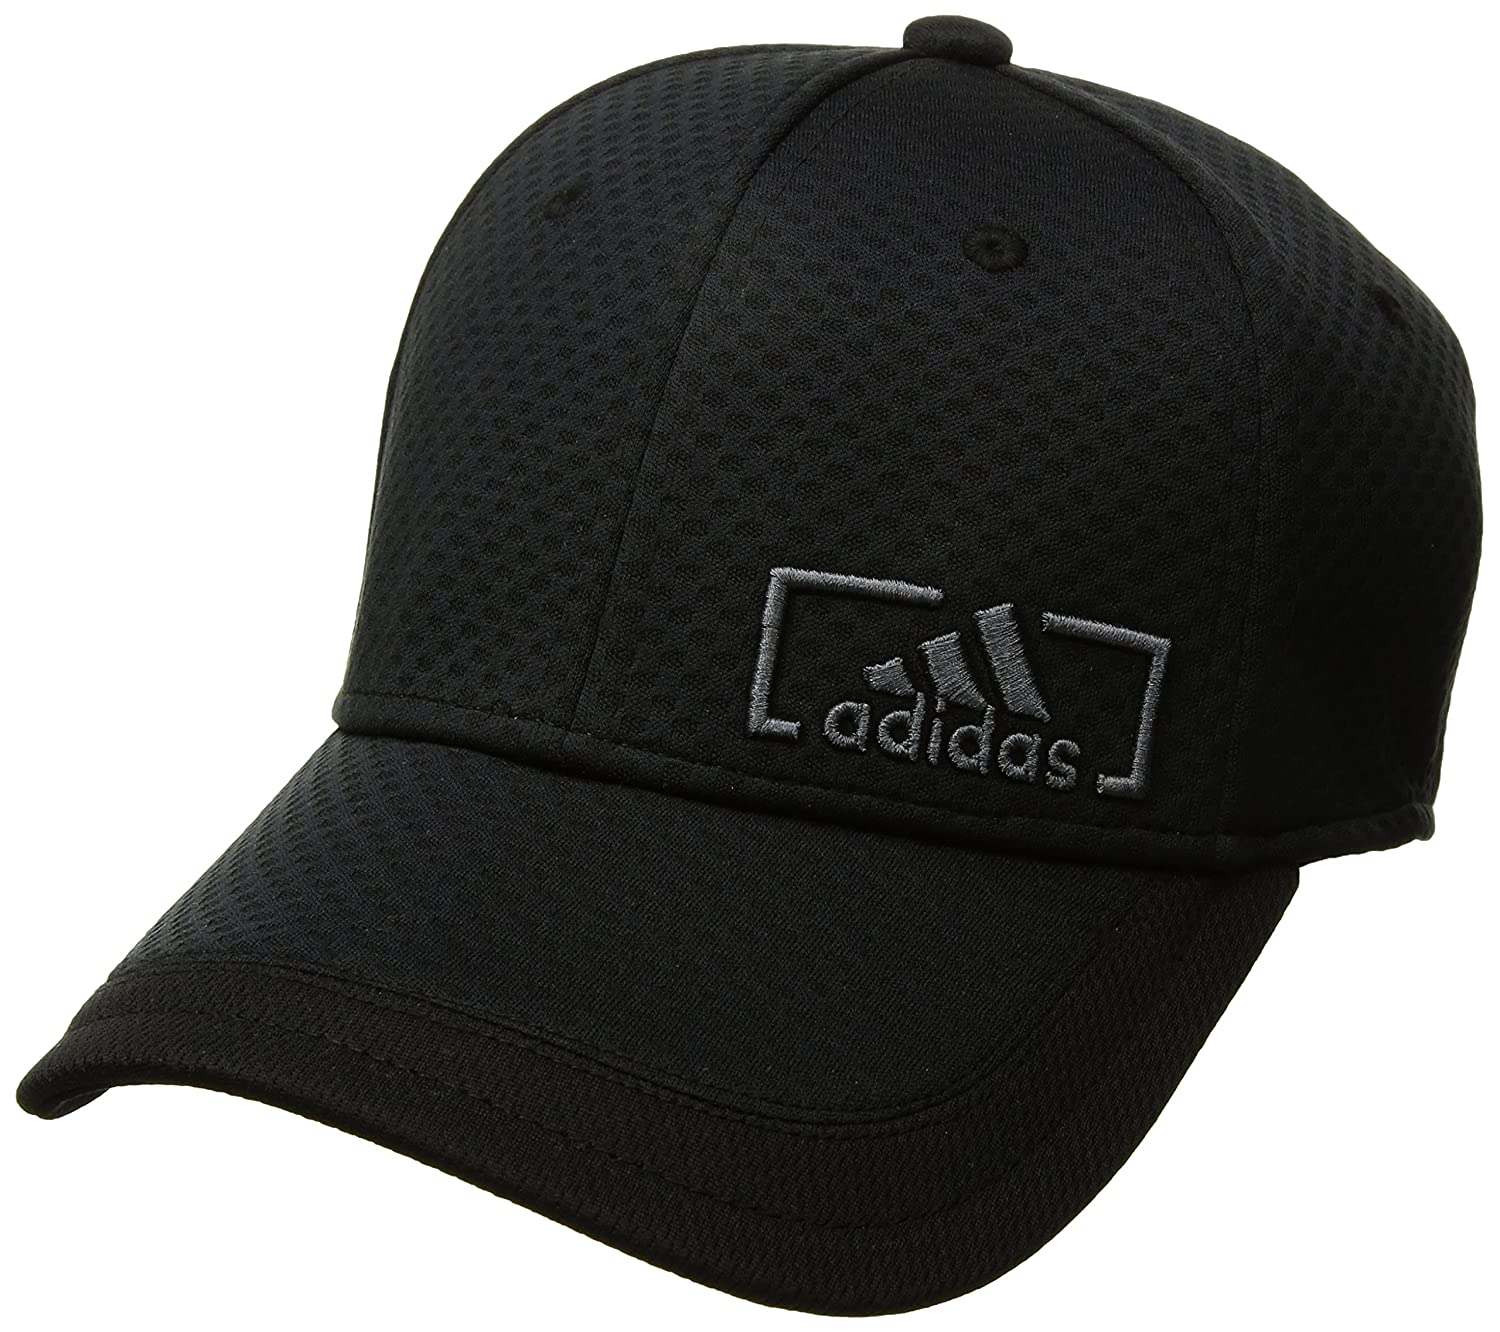 a1eb6c1fc52 Amazon.com  adidas Mens Amplifier Stretch Fit Structured Cap  Sports    Outdoors